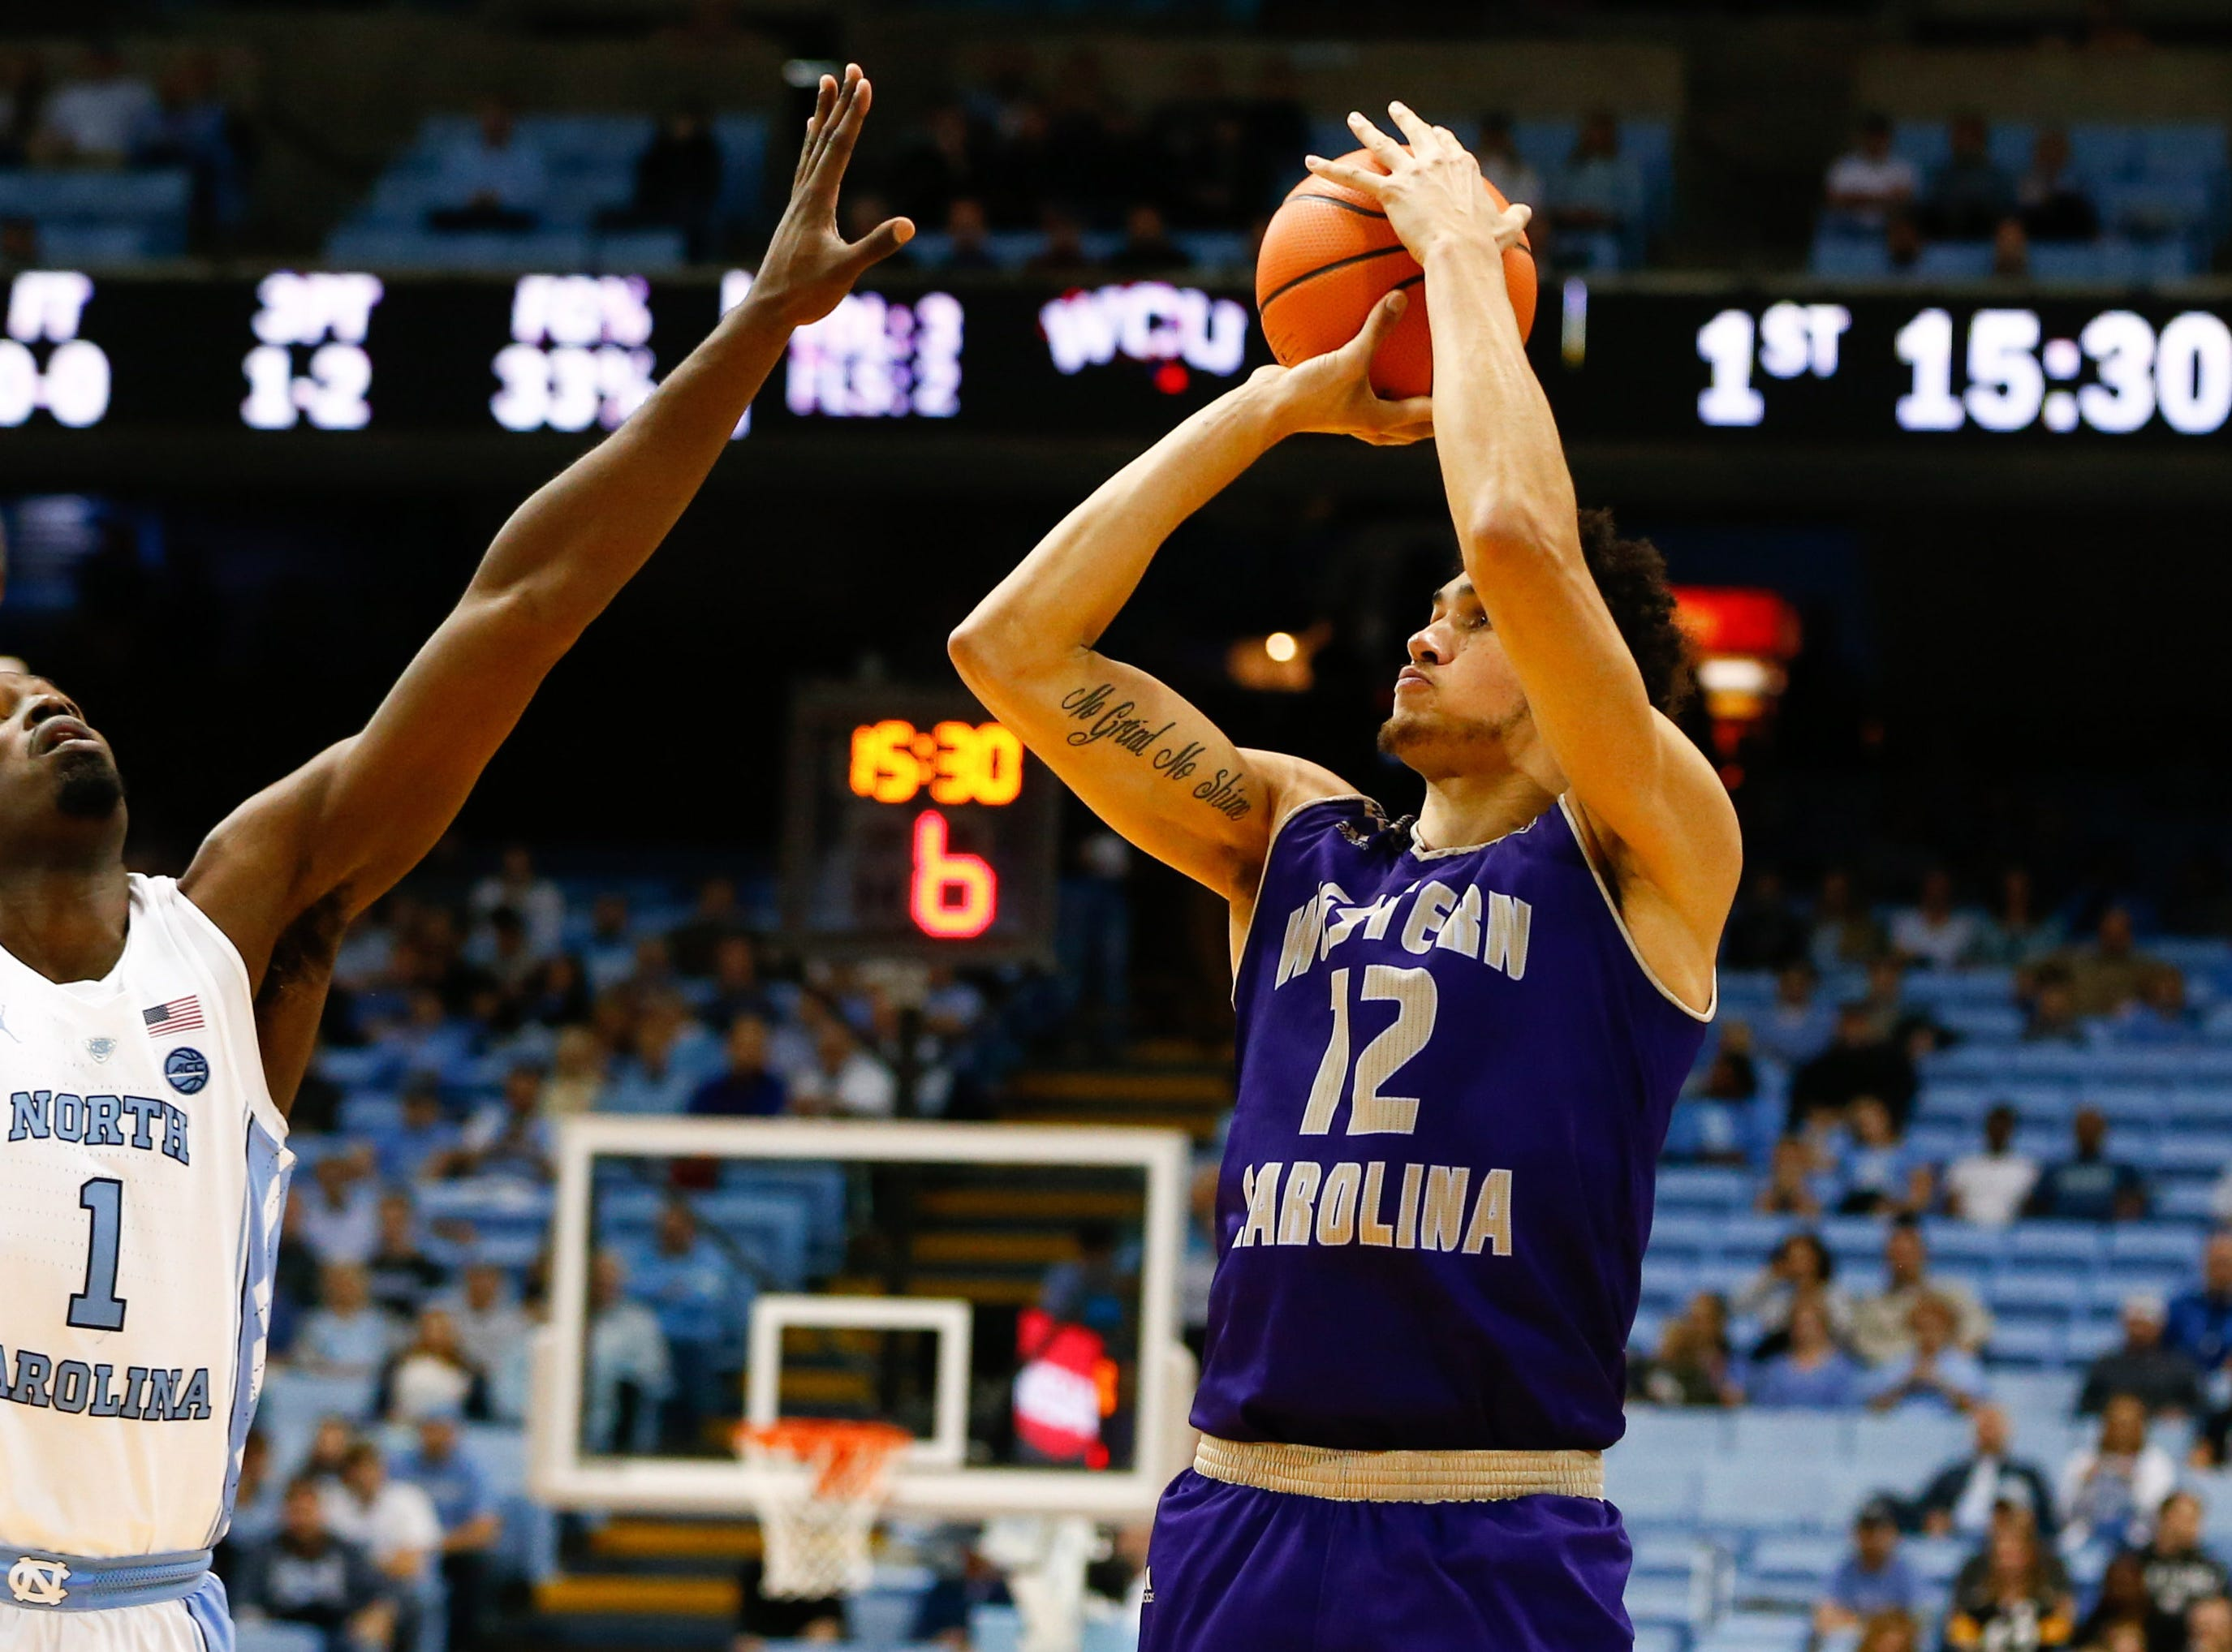 Dec 6, 2017; Chapel Hill, NC, USA; Western Carolina Catamounts forward Marc Gosselin (12) shoots the ball against North Carolina Tar Heels forward Theo Pinson (1) in the first half at Dean E. Smith Center. Mandatory Credit: Jeremy Brevard-USA TODAY Sports